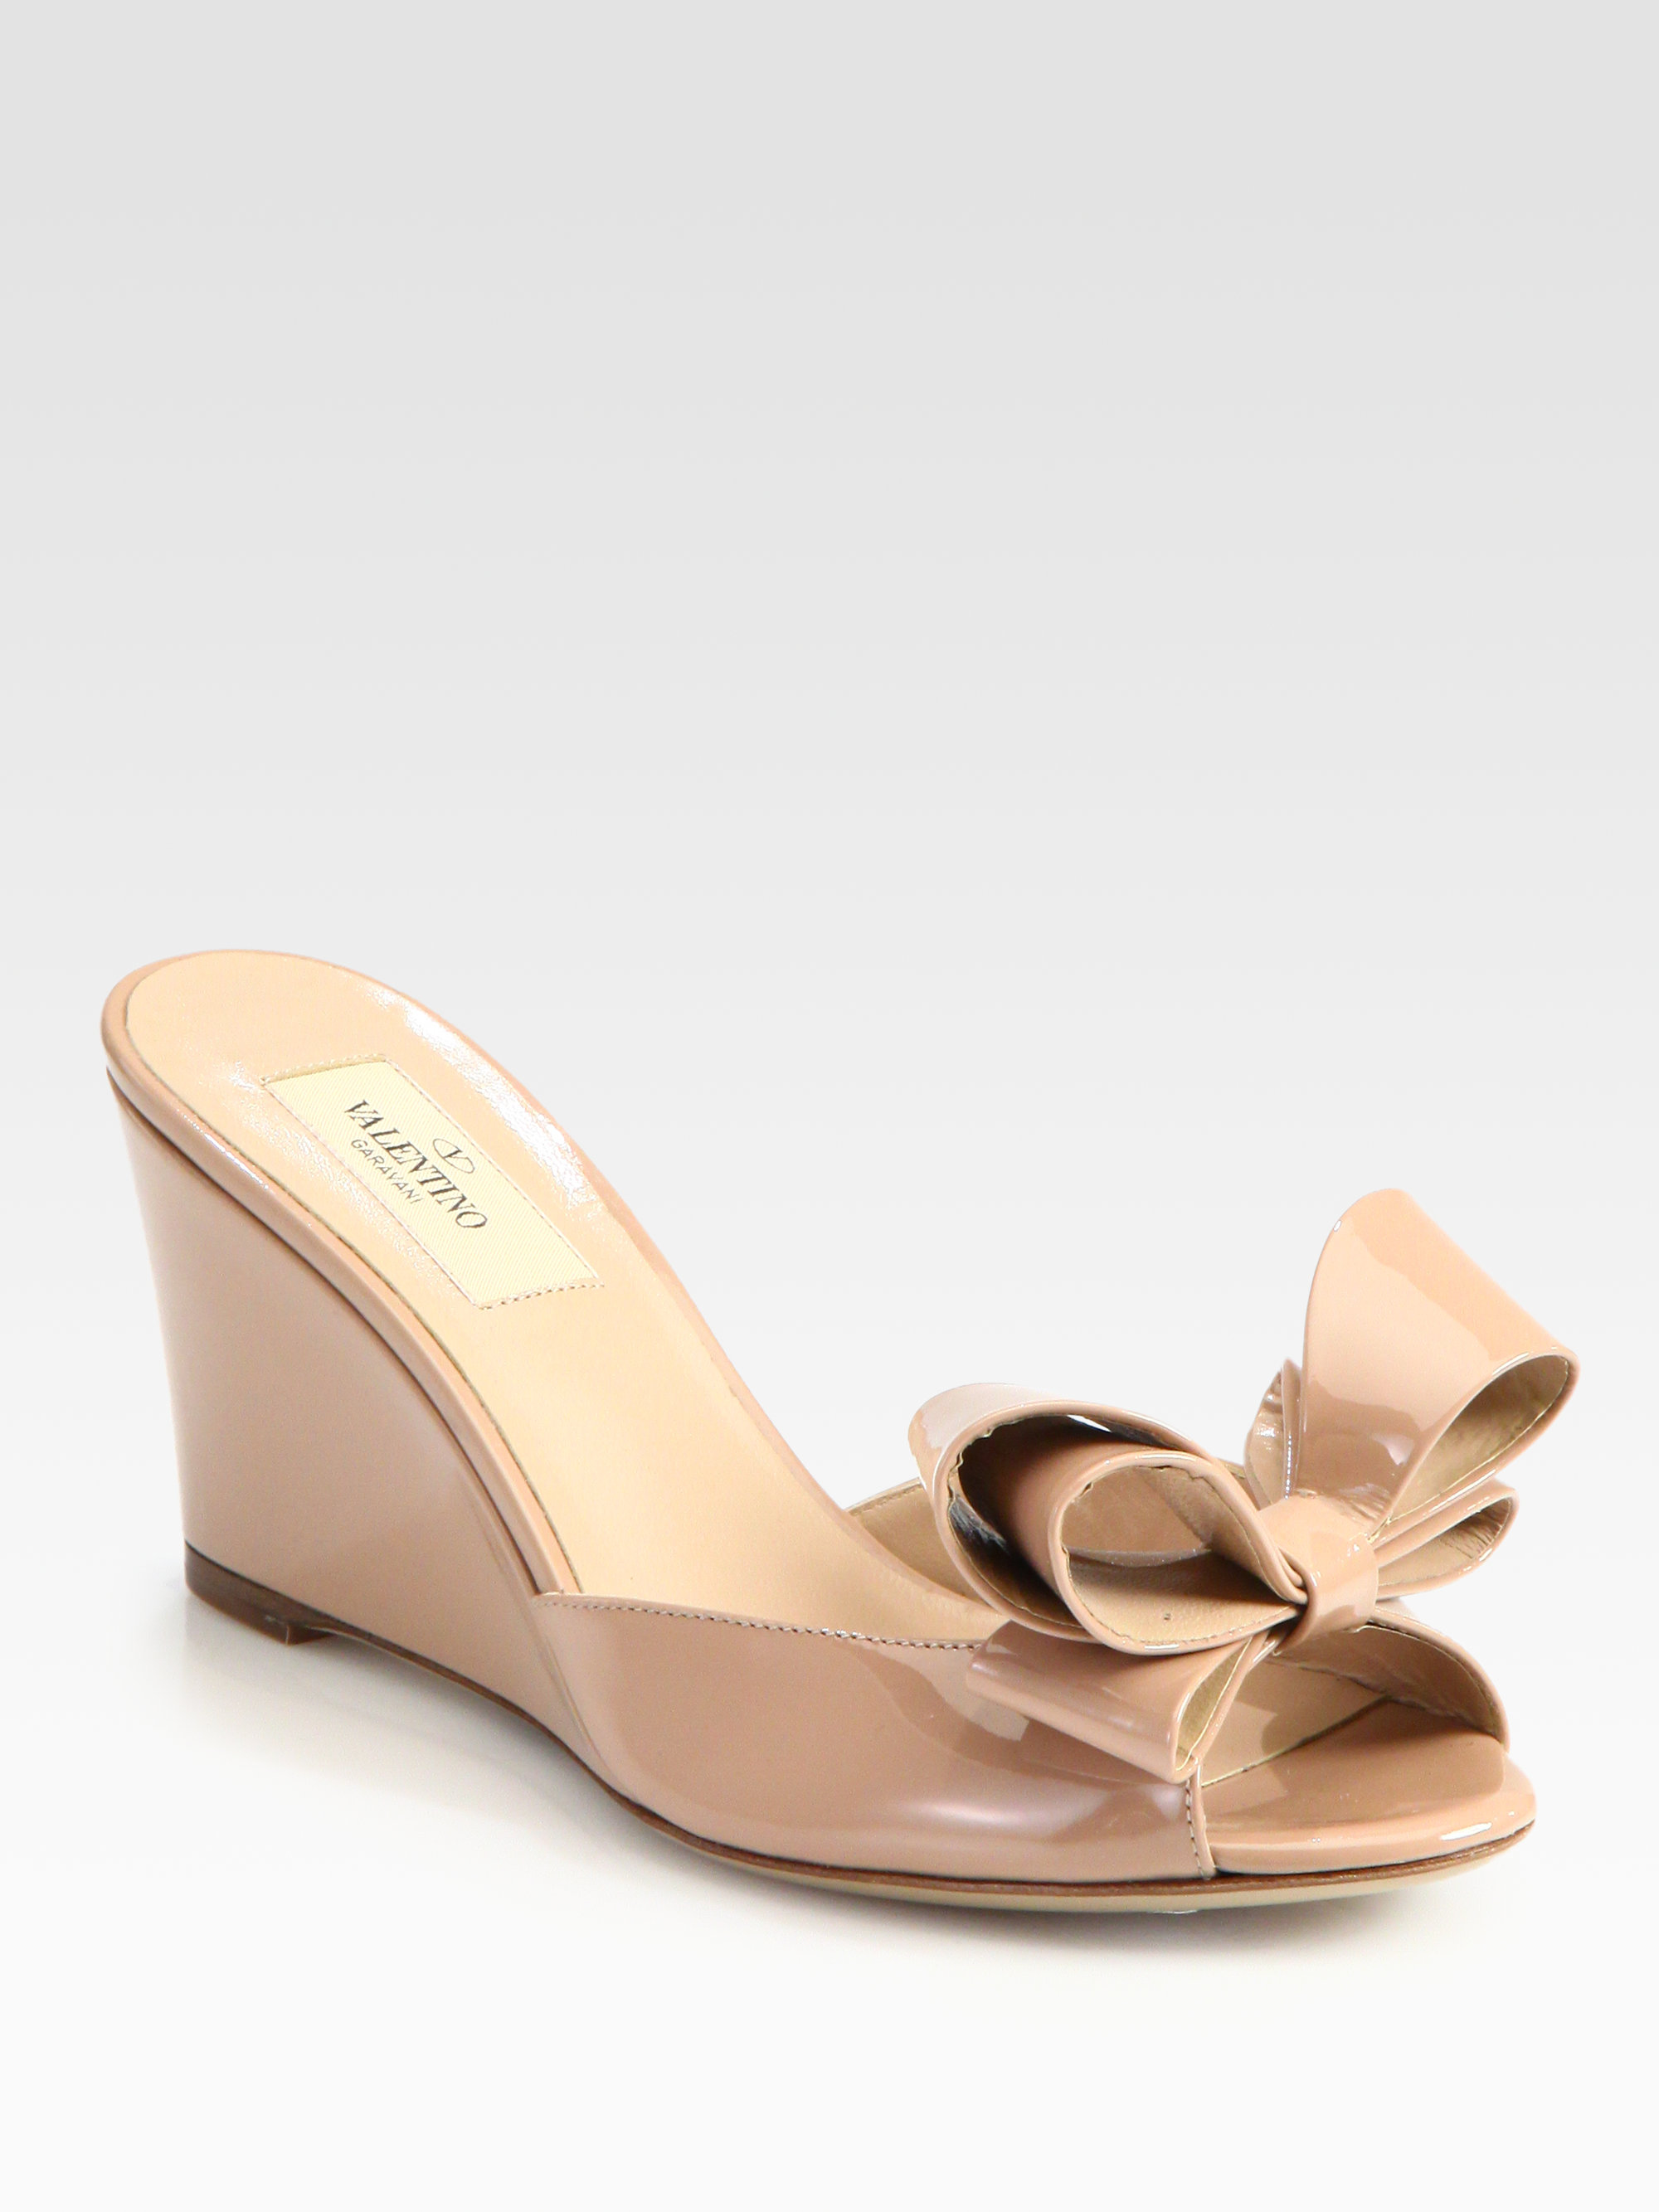 Valentino Patent Leather Bow Wedges visit new cheap online free shipping with mastercard CYe4V5